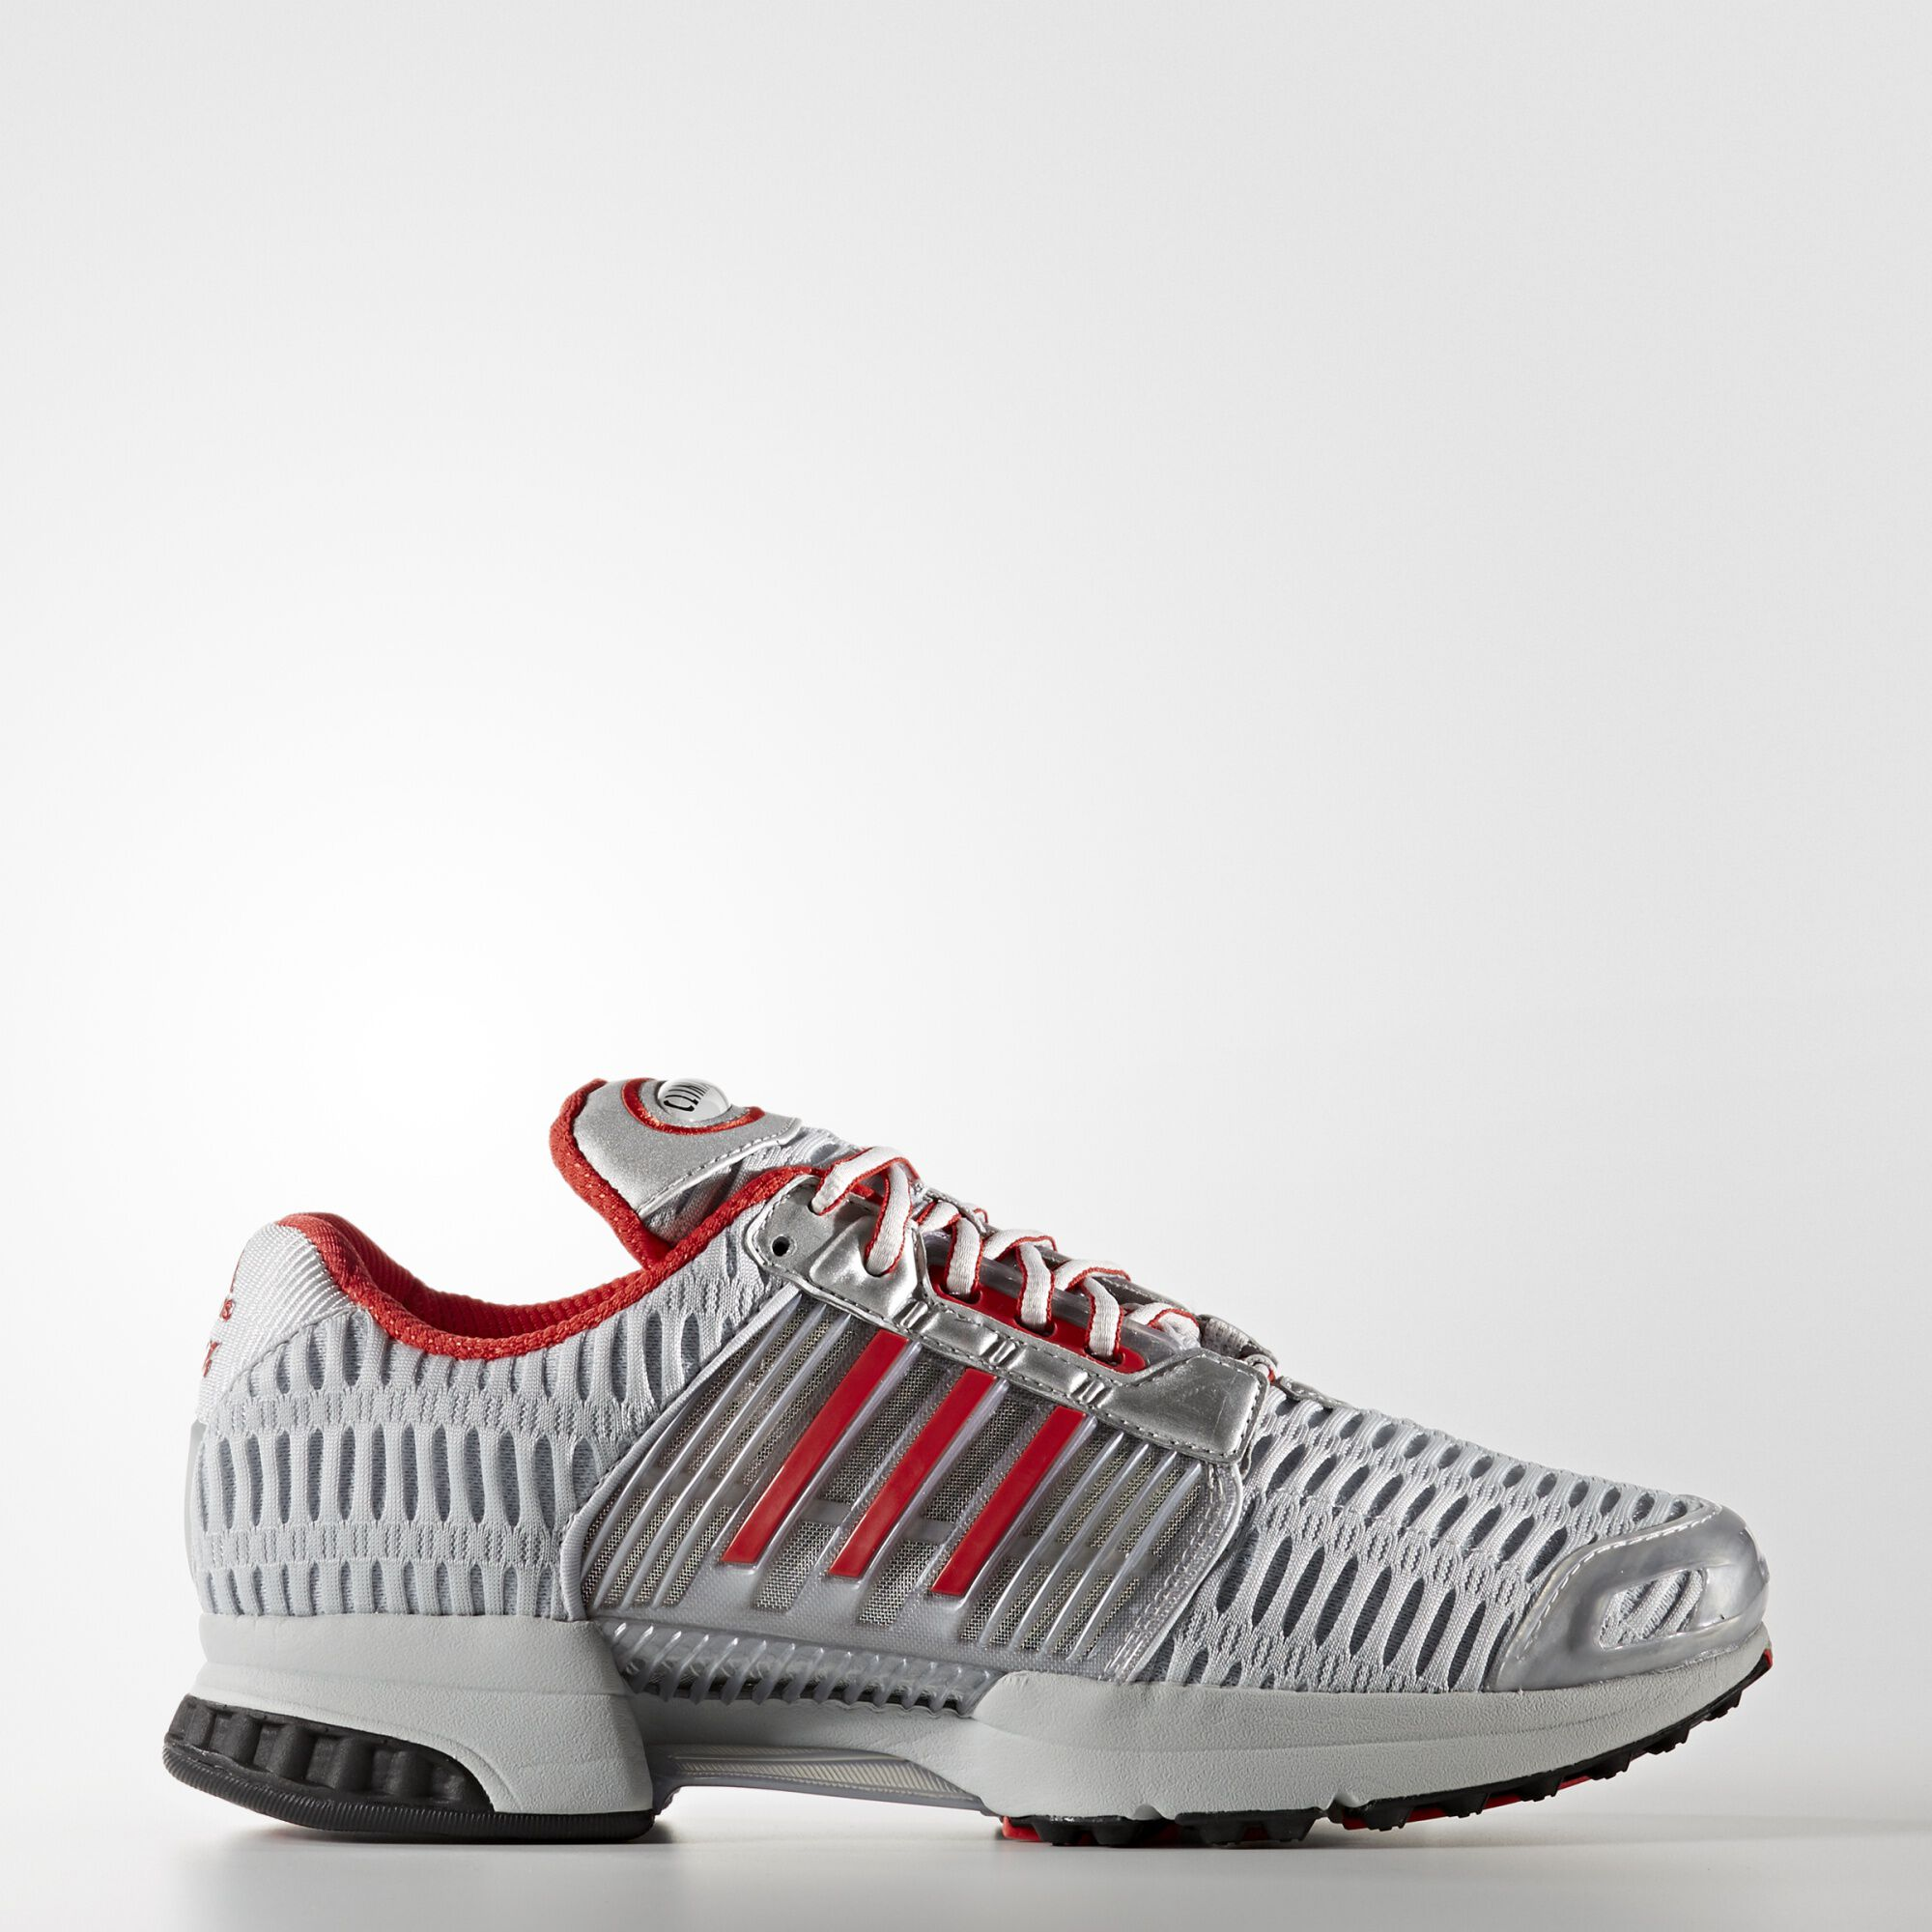 adidas climacool schuhe alte modelle